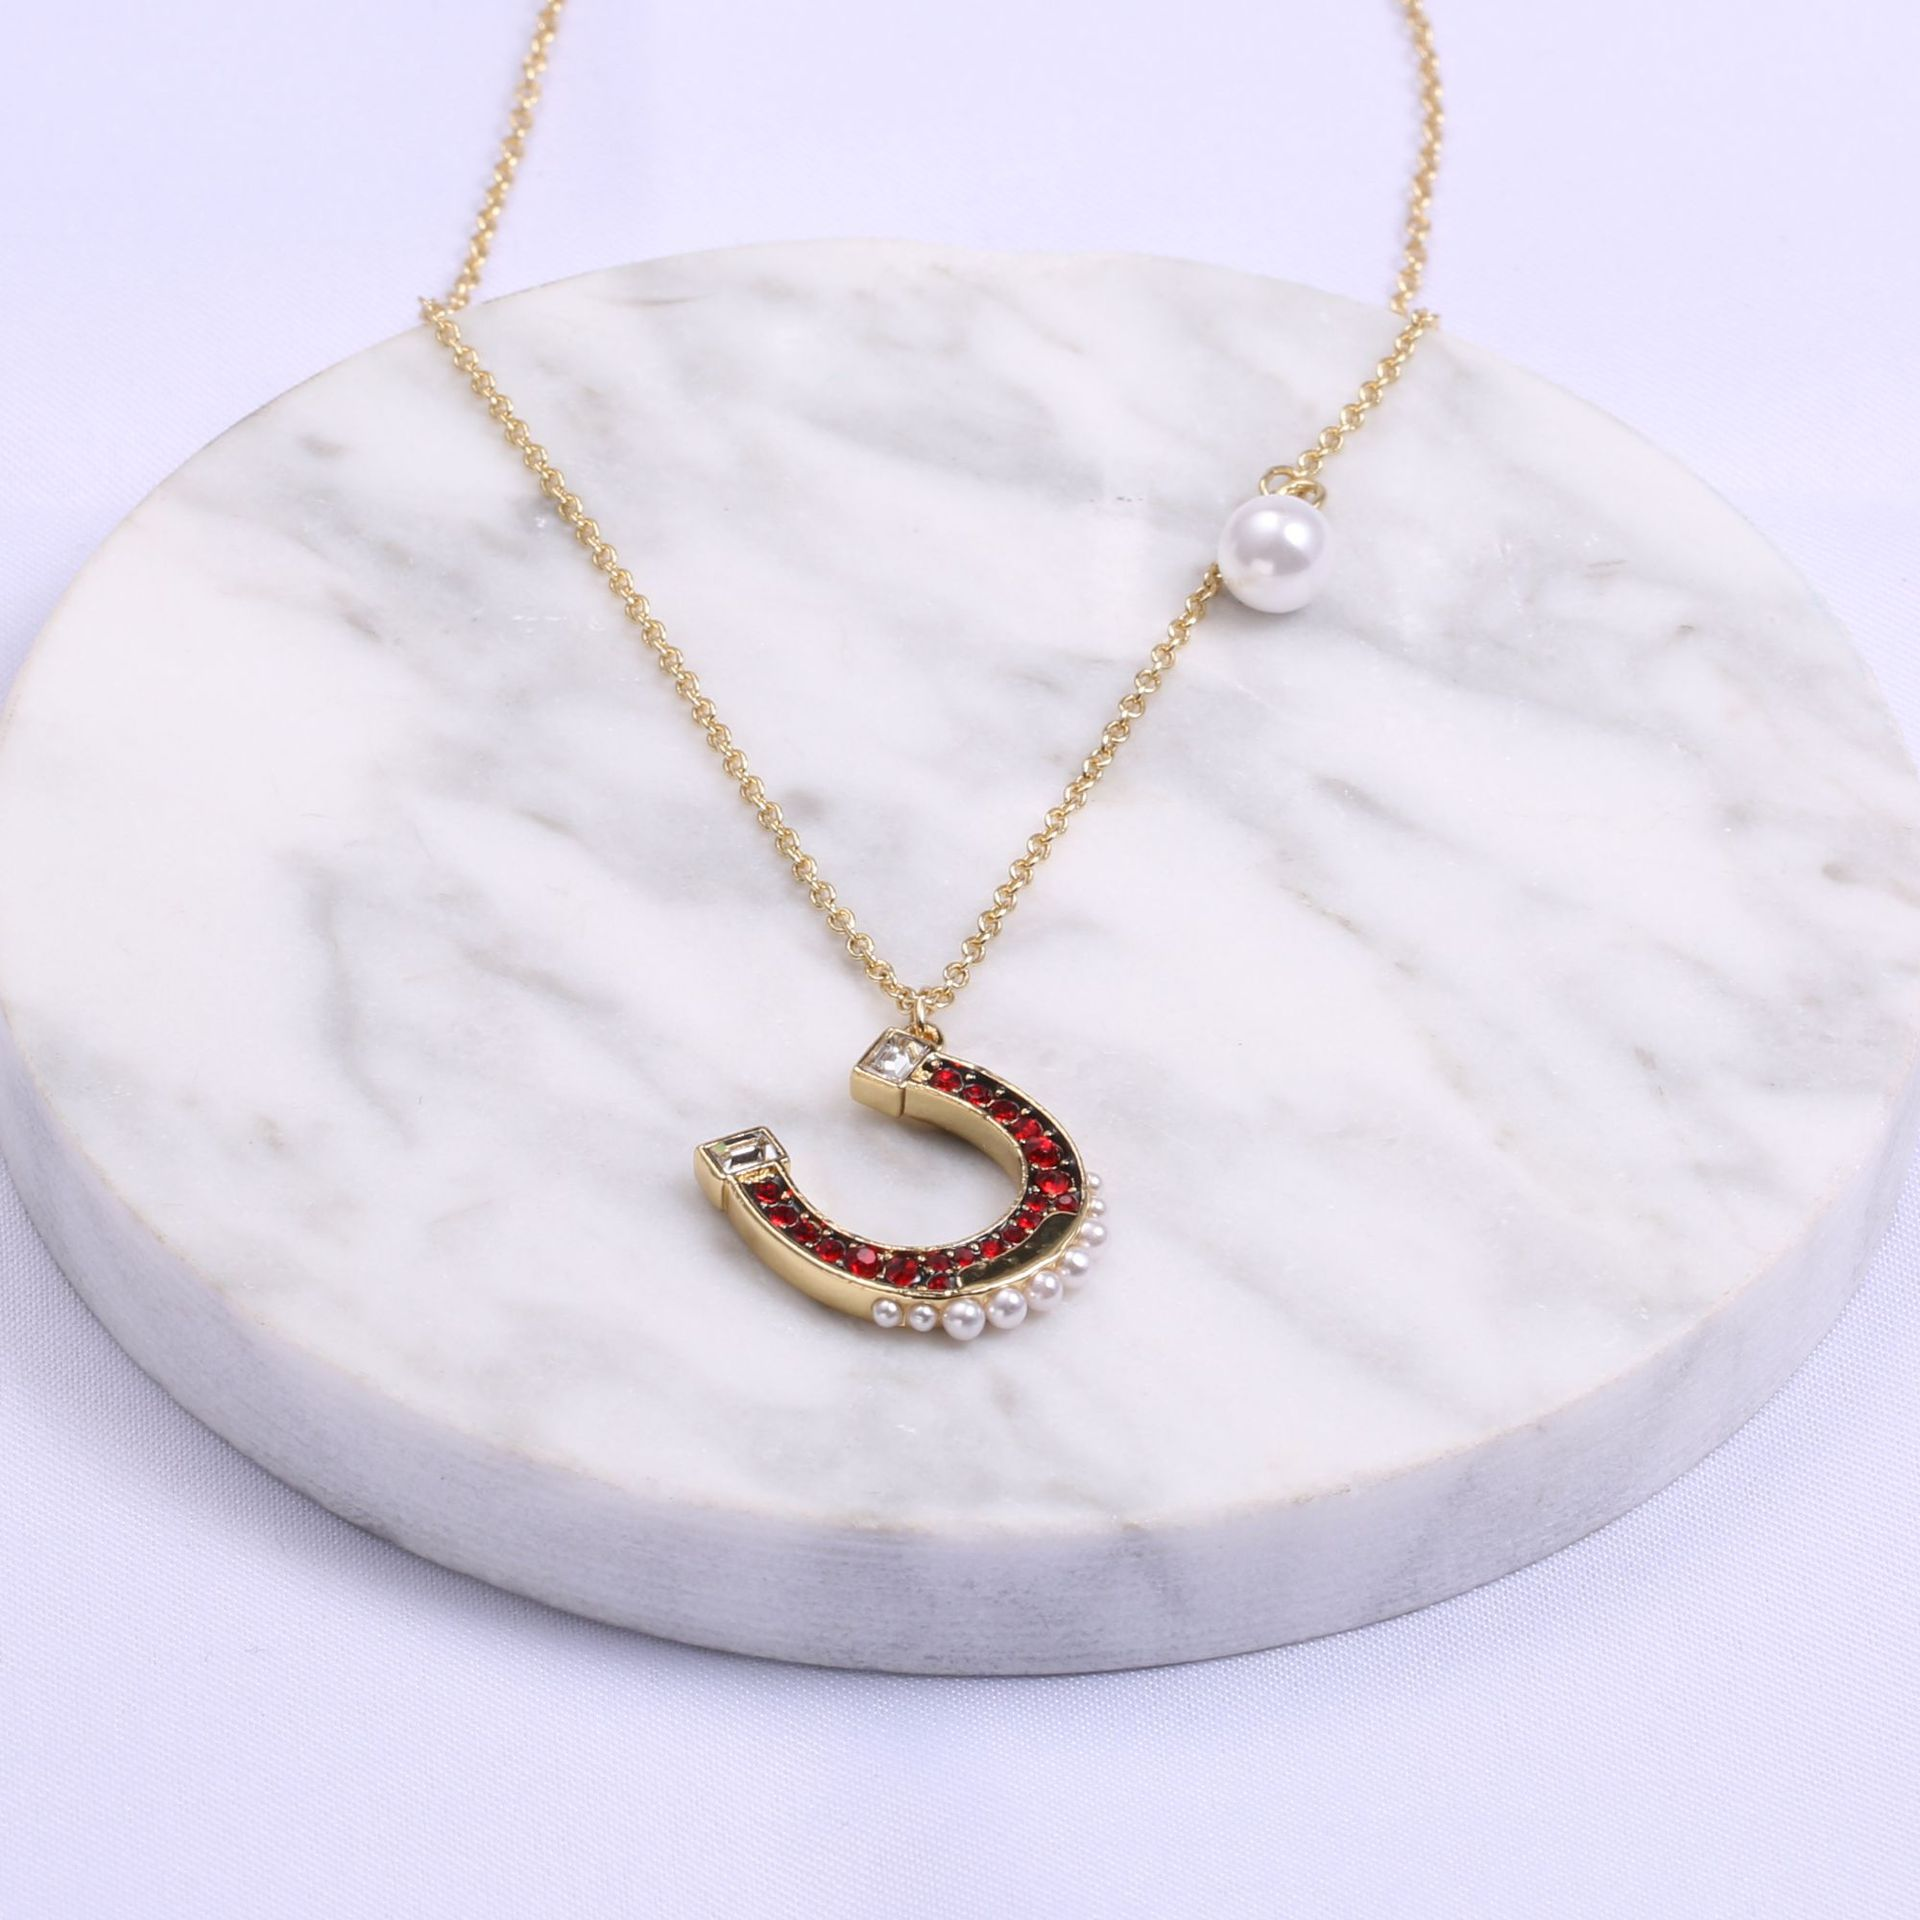 Shih New Style Lucky Red U-Shaped Horseshoe Necklace Women's Pearl Delicacy Fashion Play Fun Horseshoe Shape